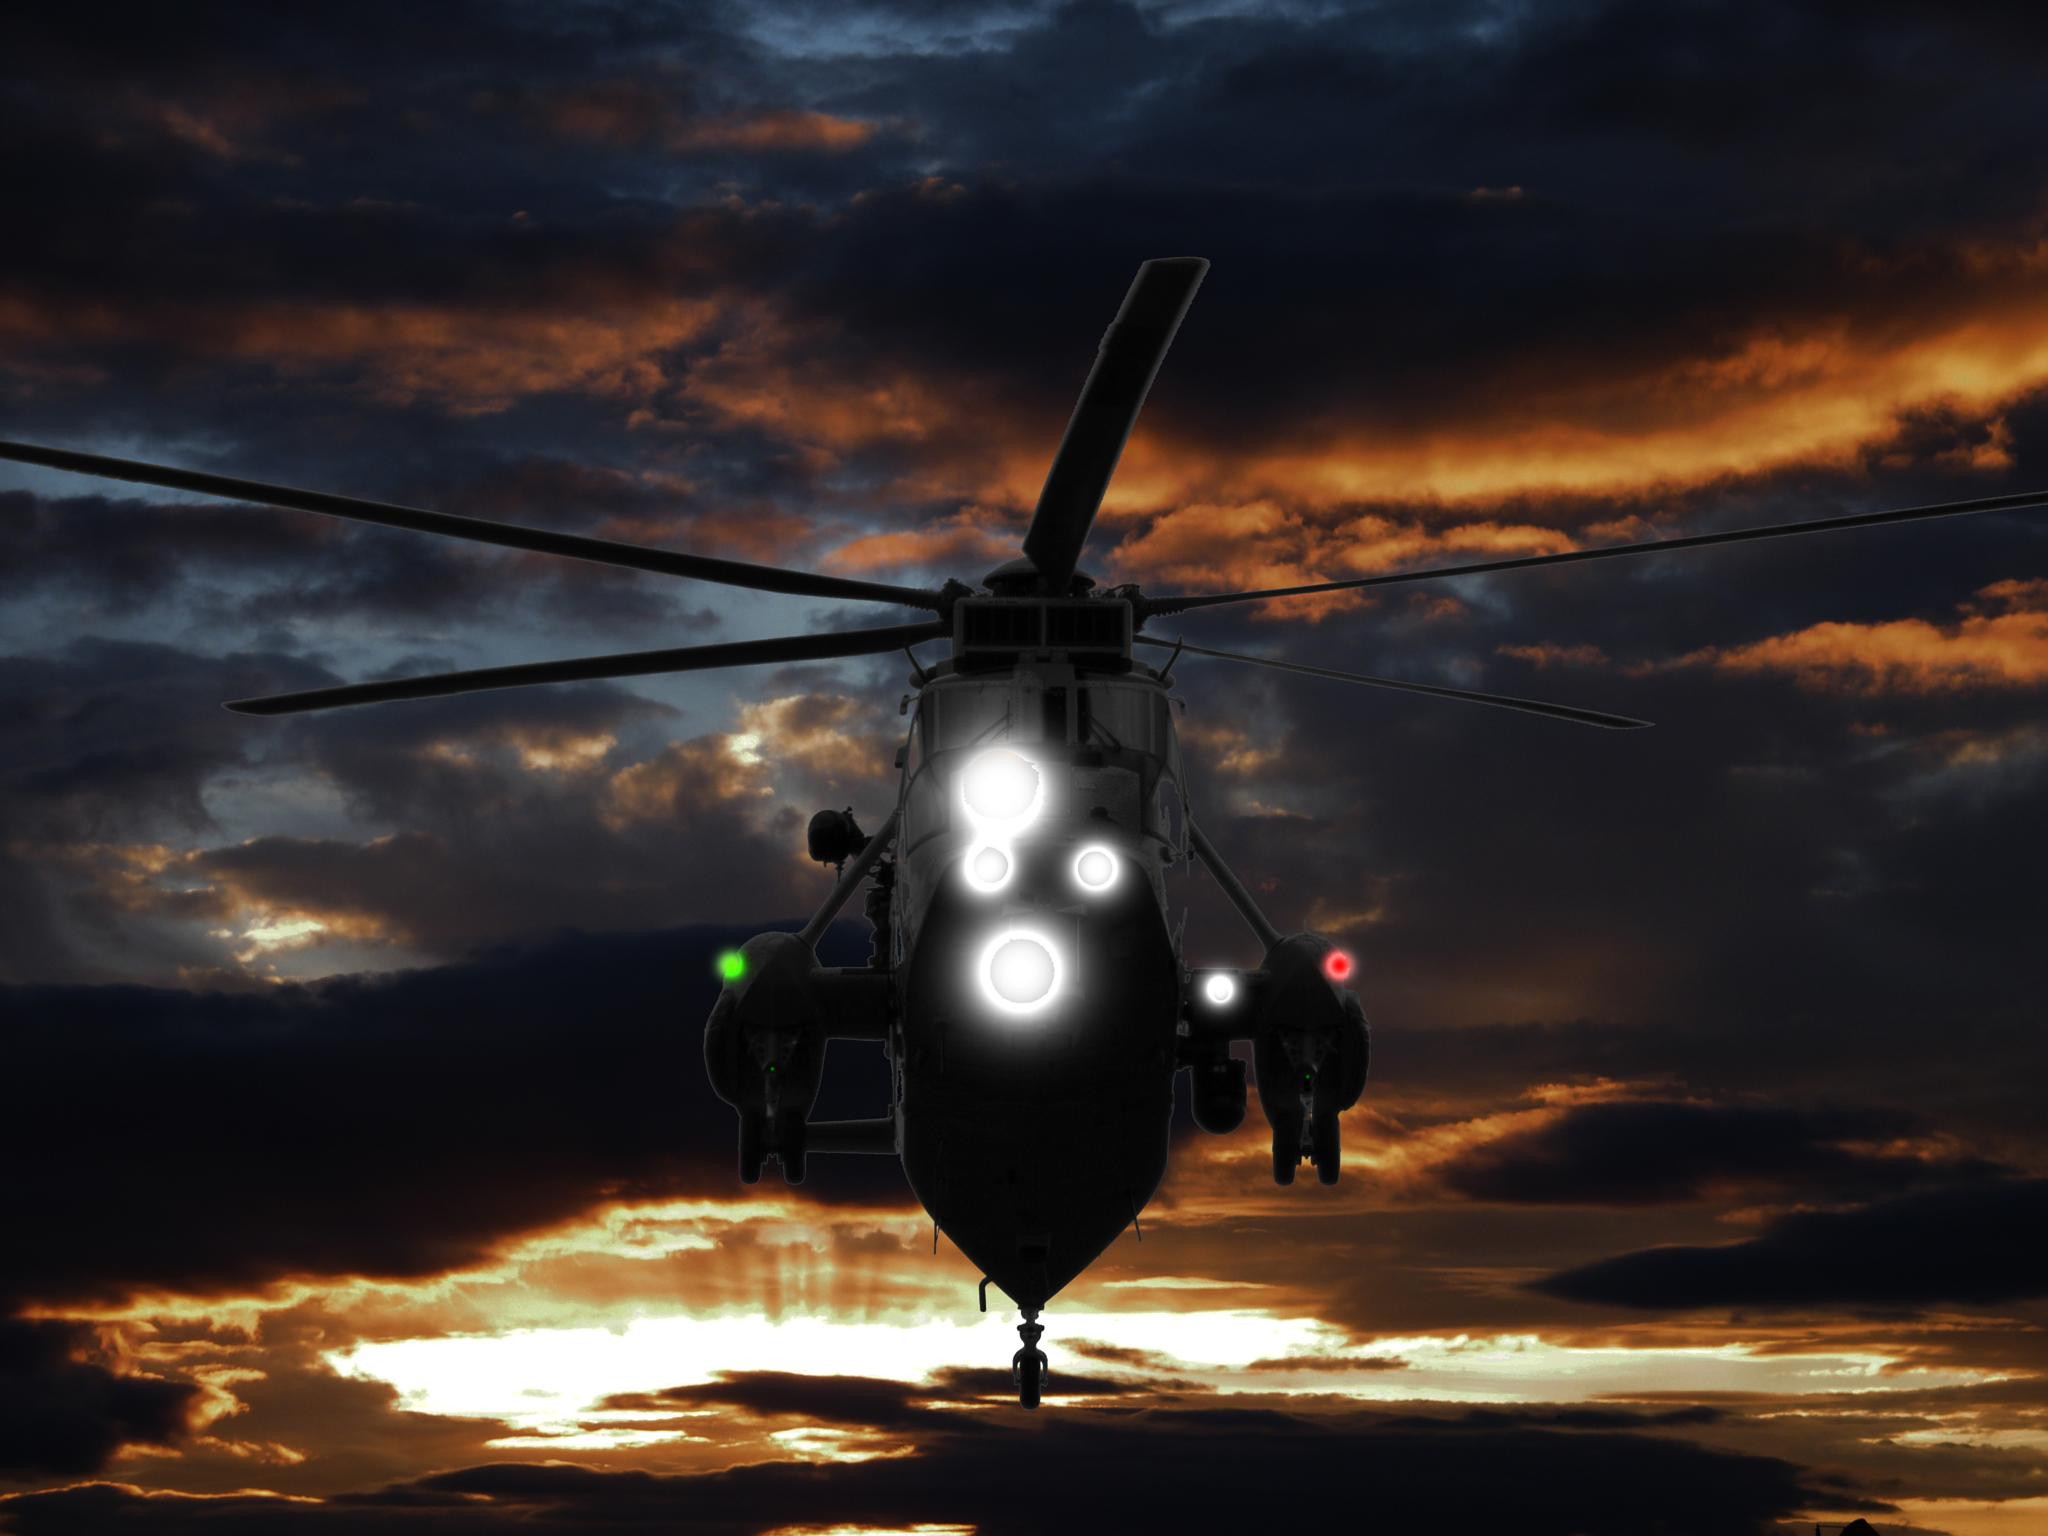 Seaking Sunset Approach by tony.winfield.94